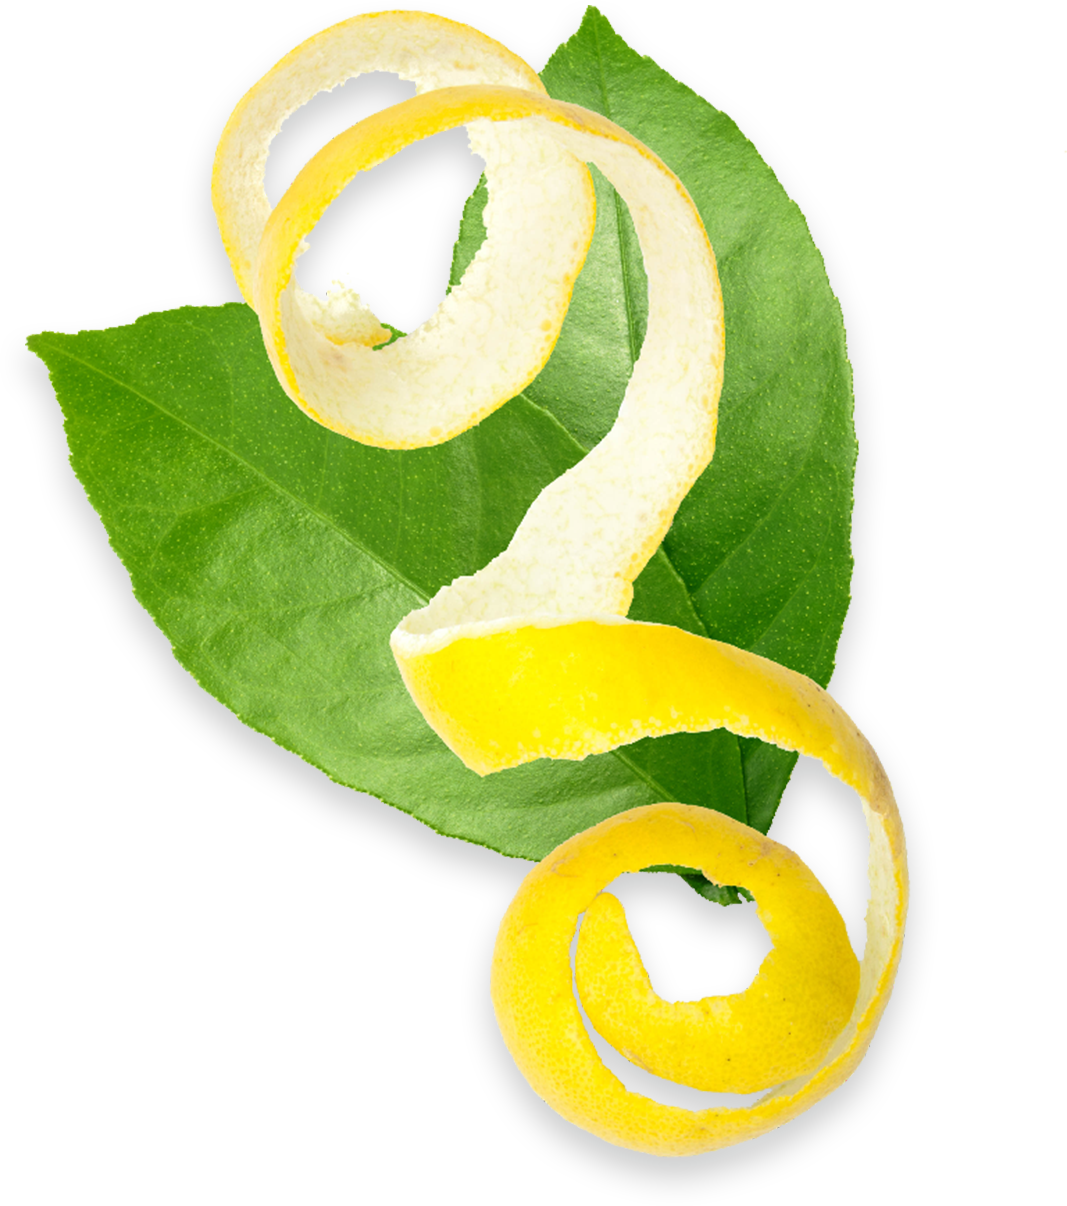 A lemon peel in front of two leaves.